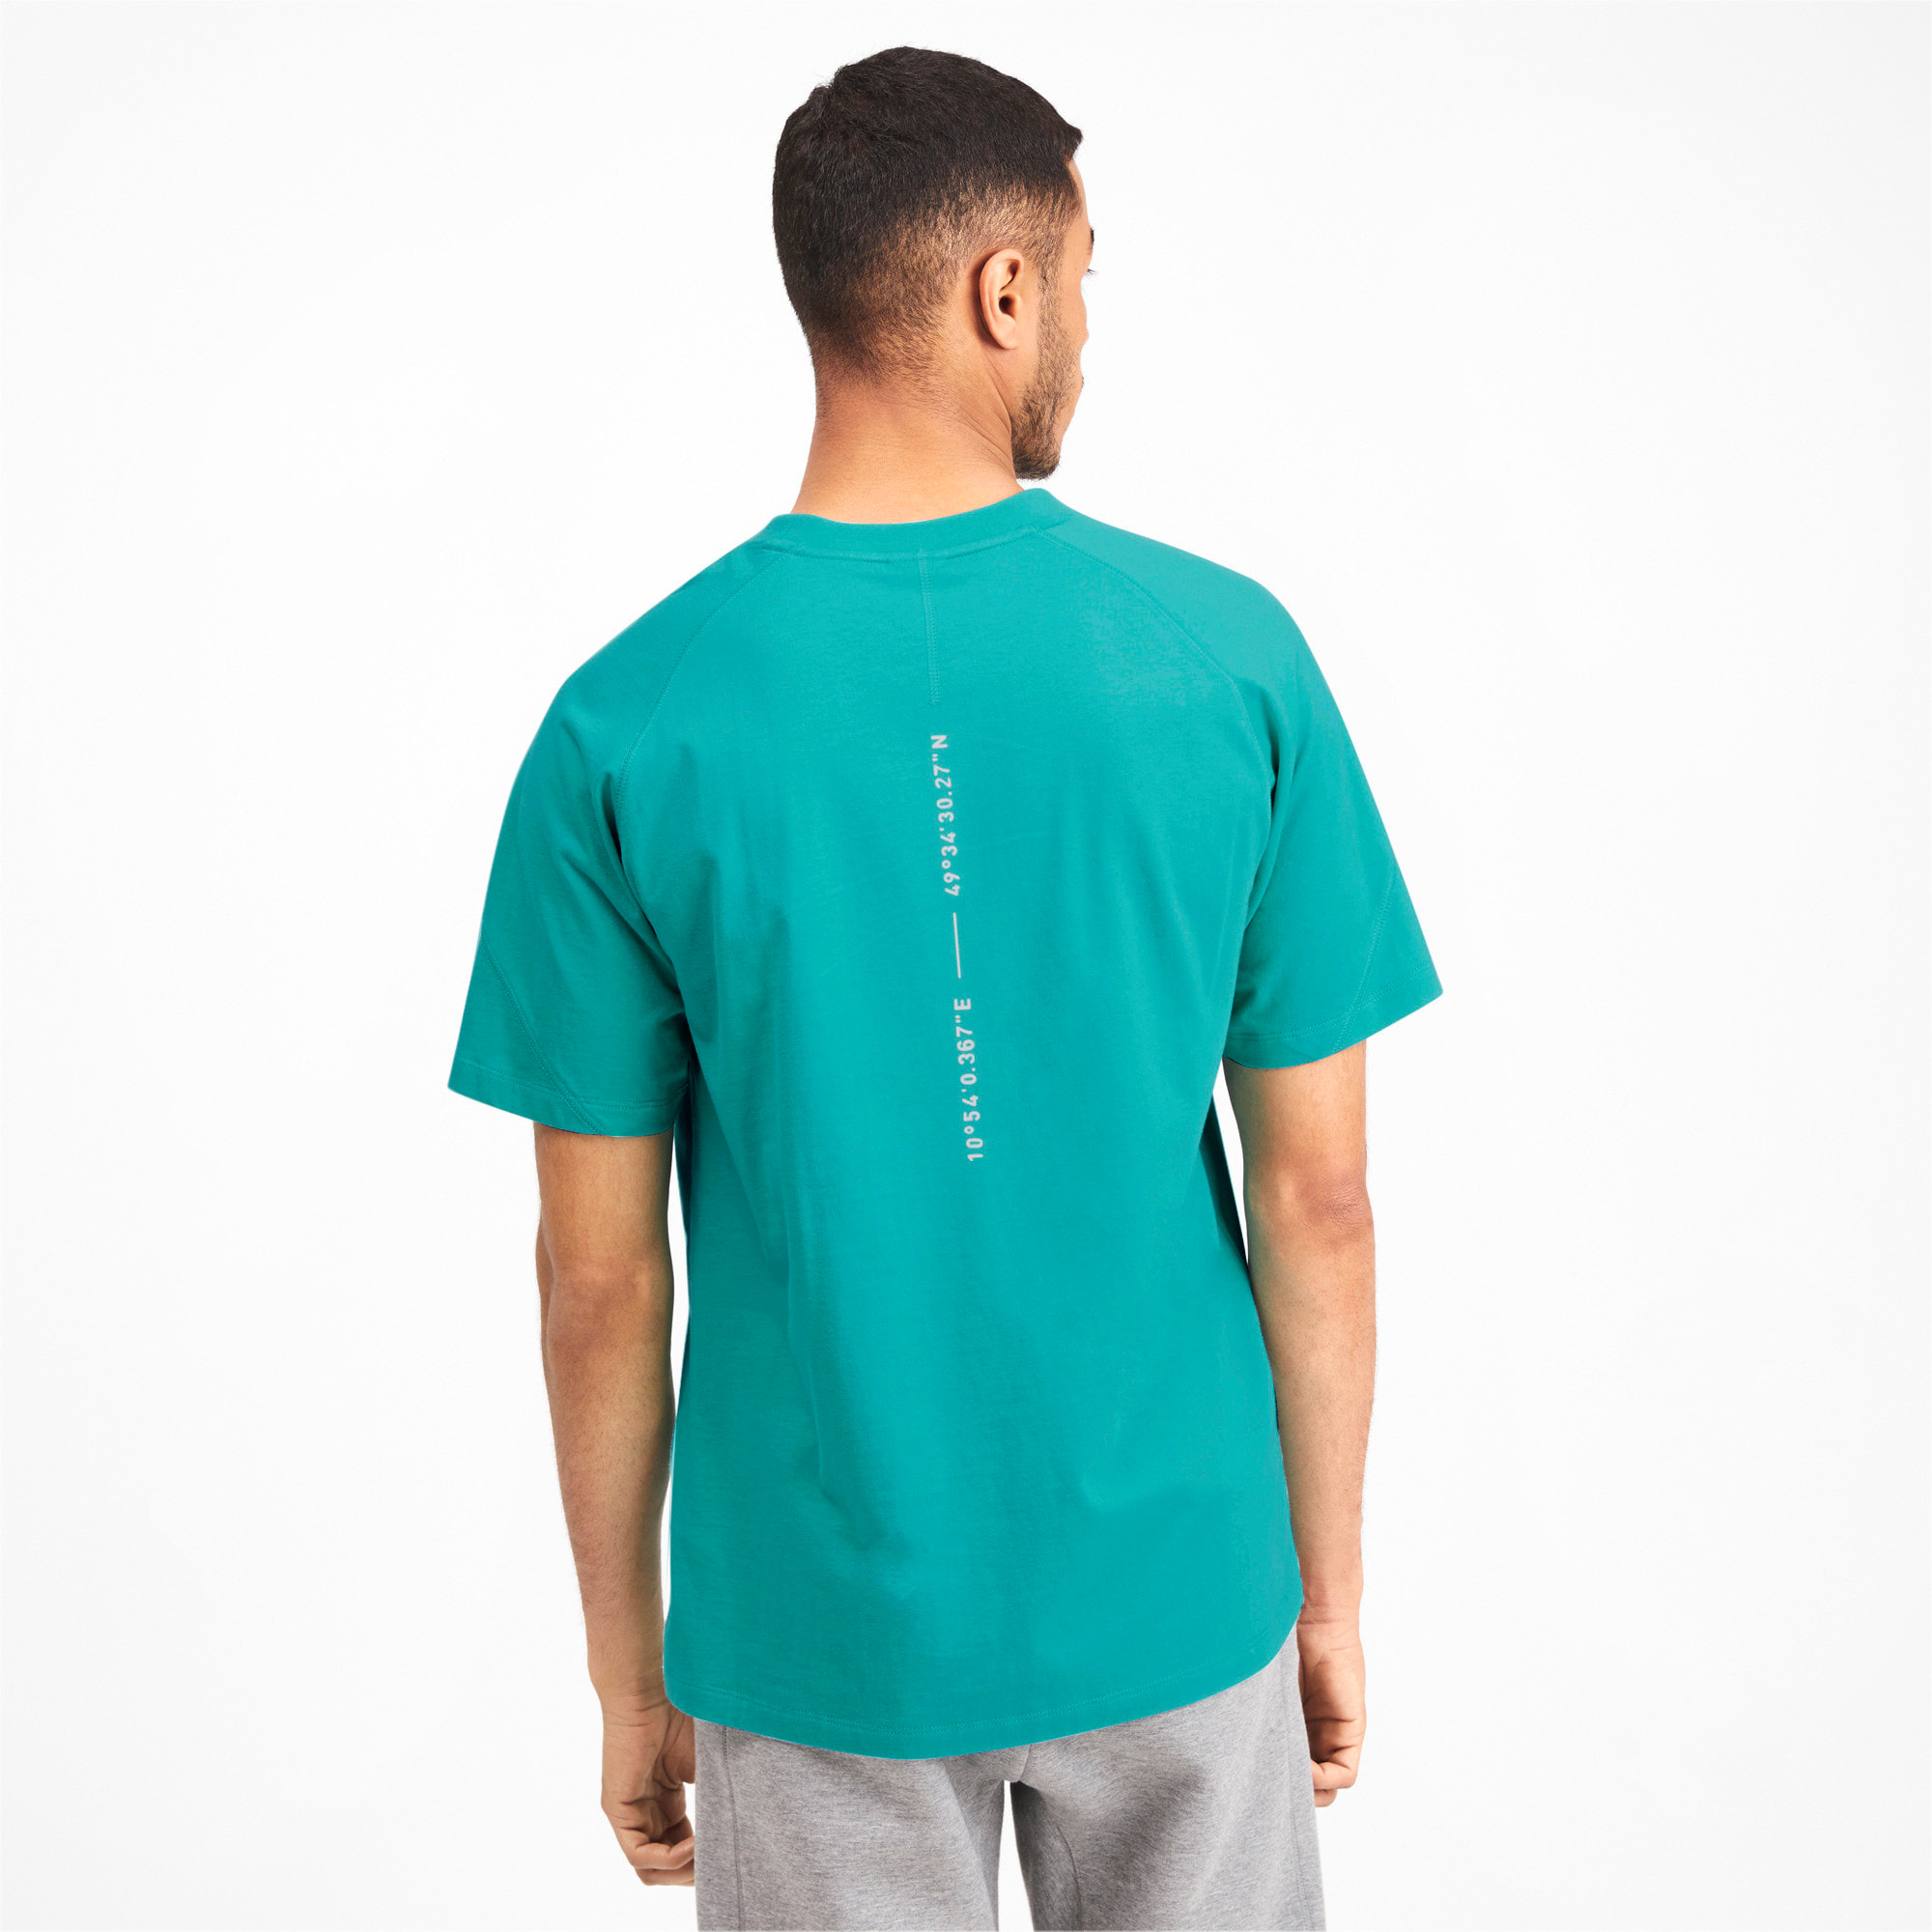 Thumbnail 3 of Epoch Men's Tee, Blue Turquoise, medium